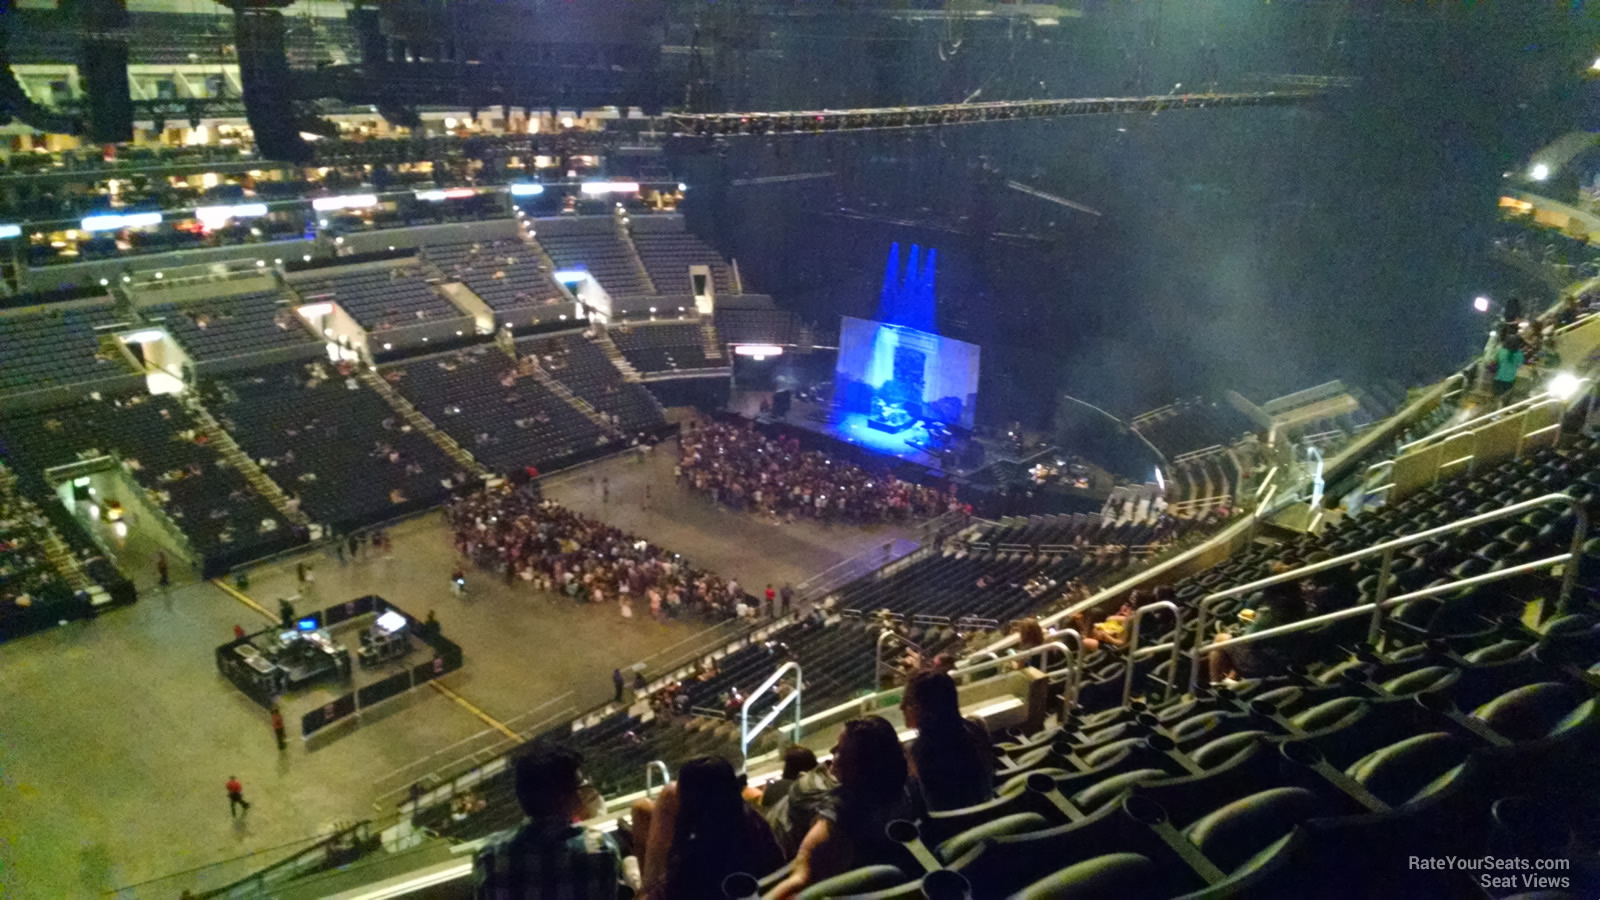 Staples Center Section 304 Concert Seating Rateyourseats Com